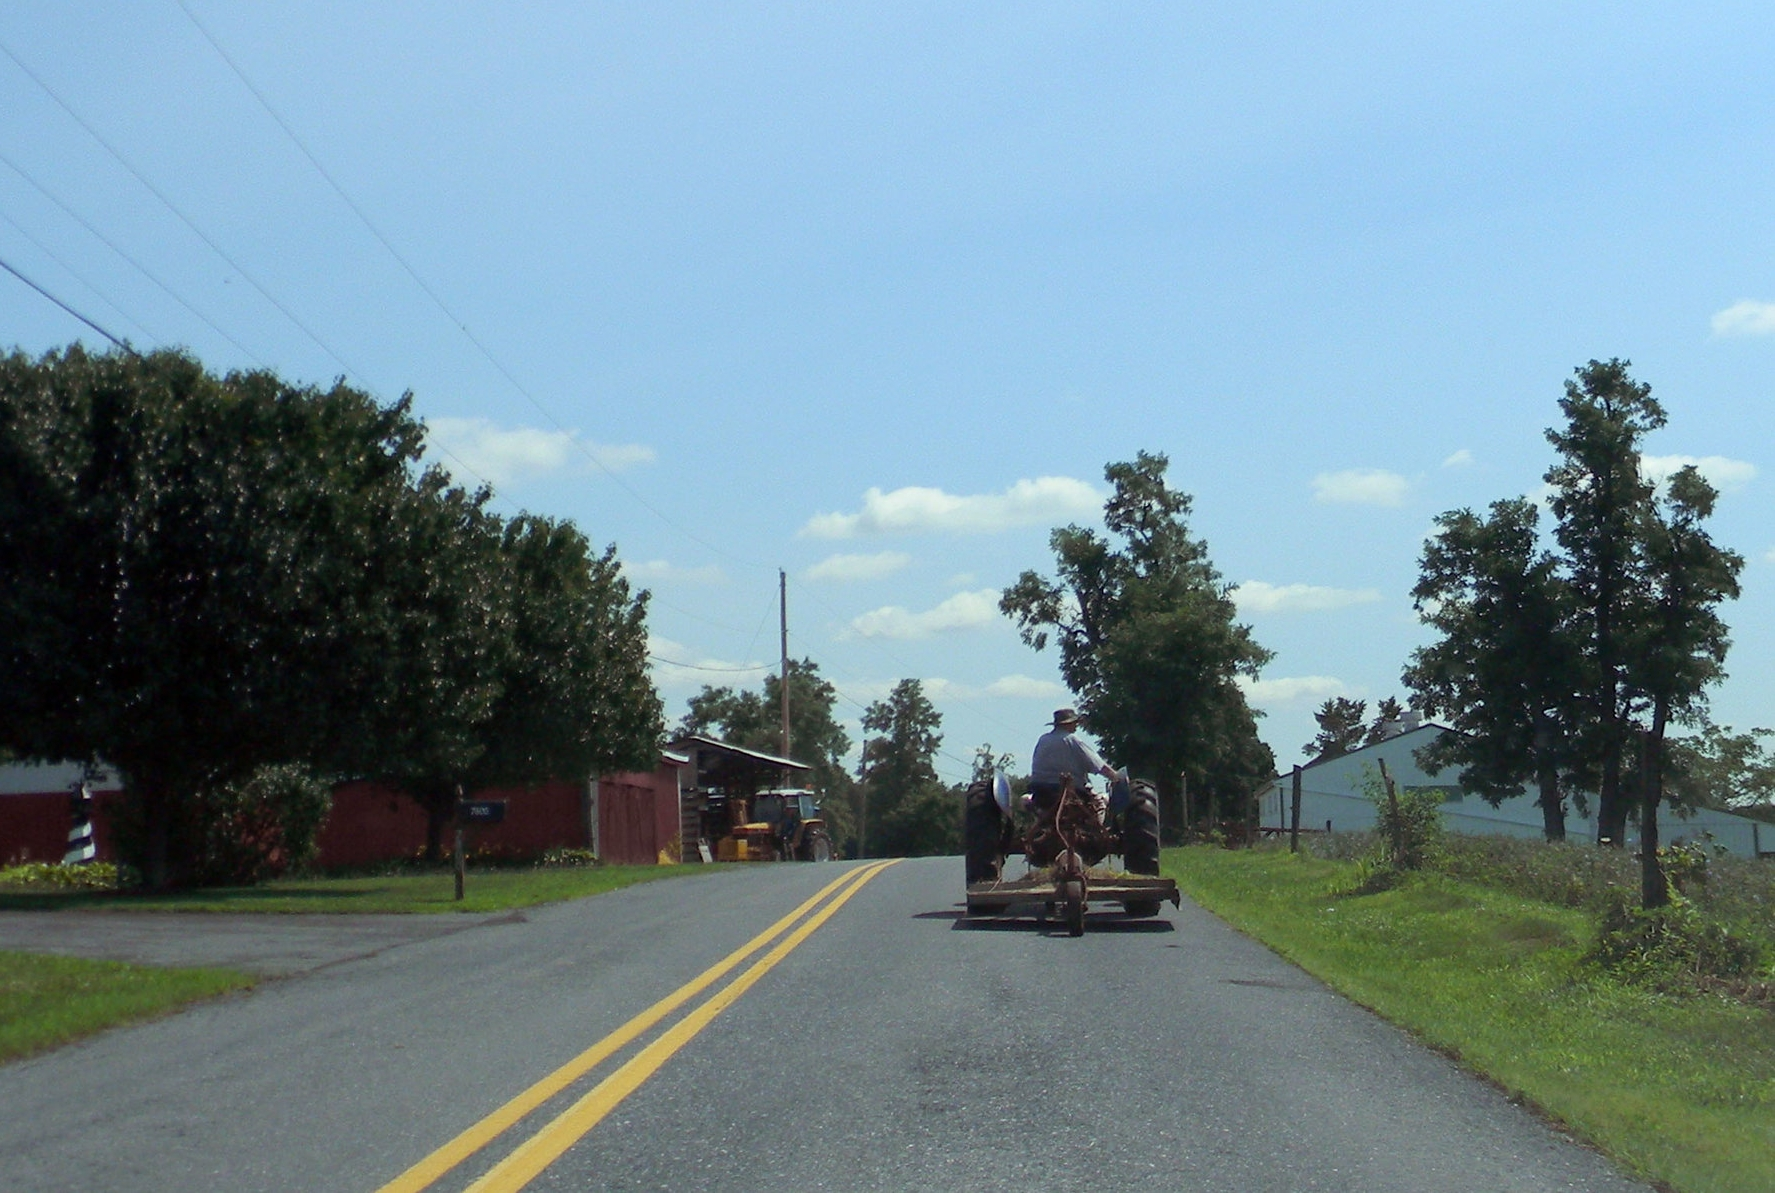 Rural scene in West Hanover Township